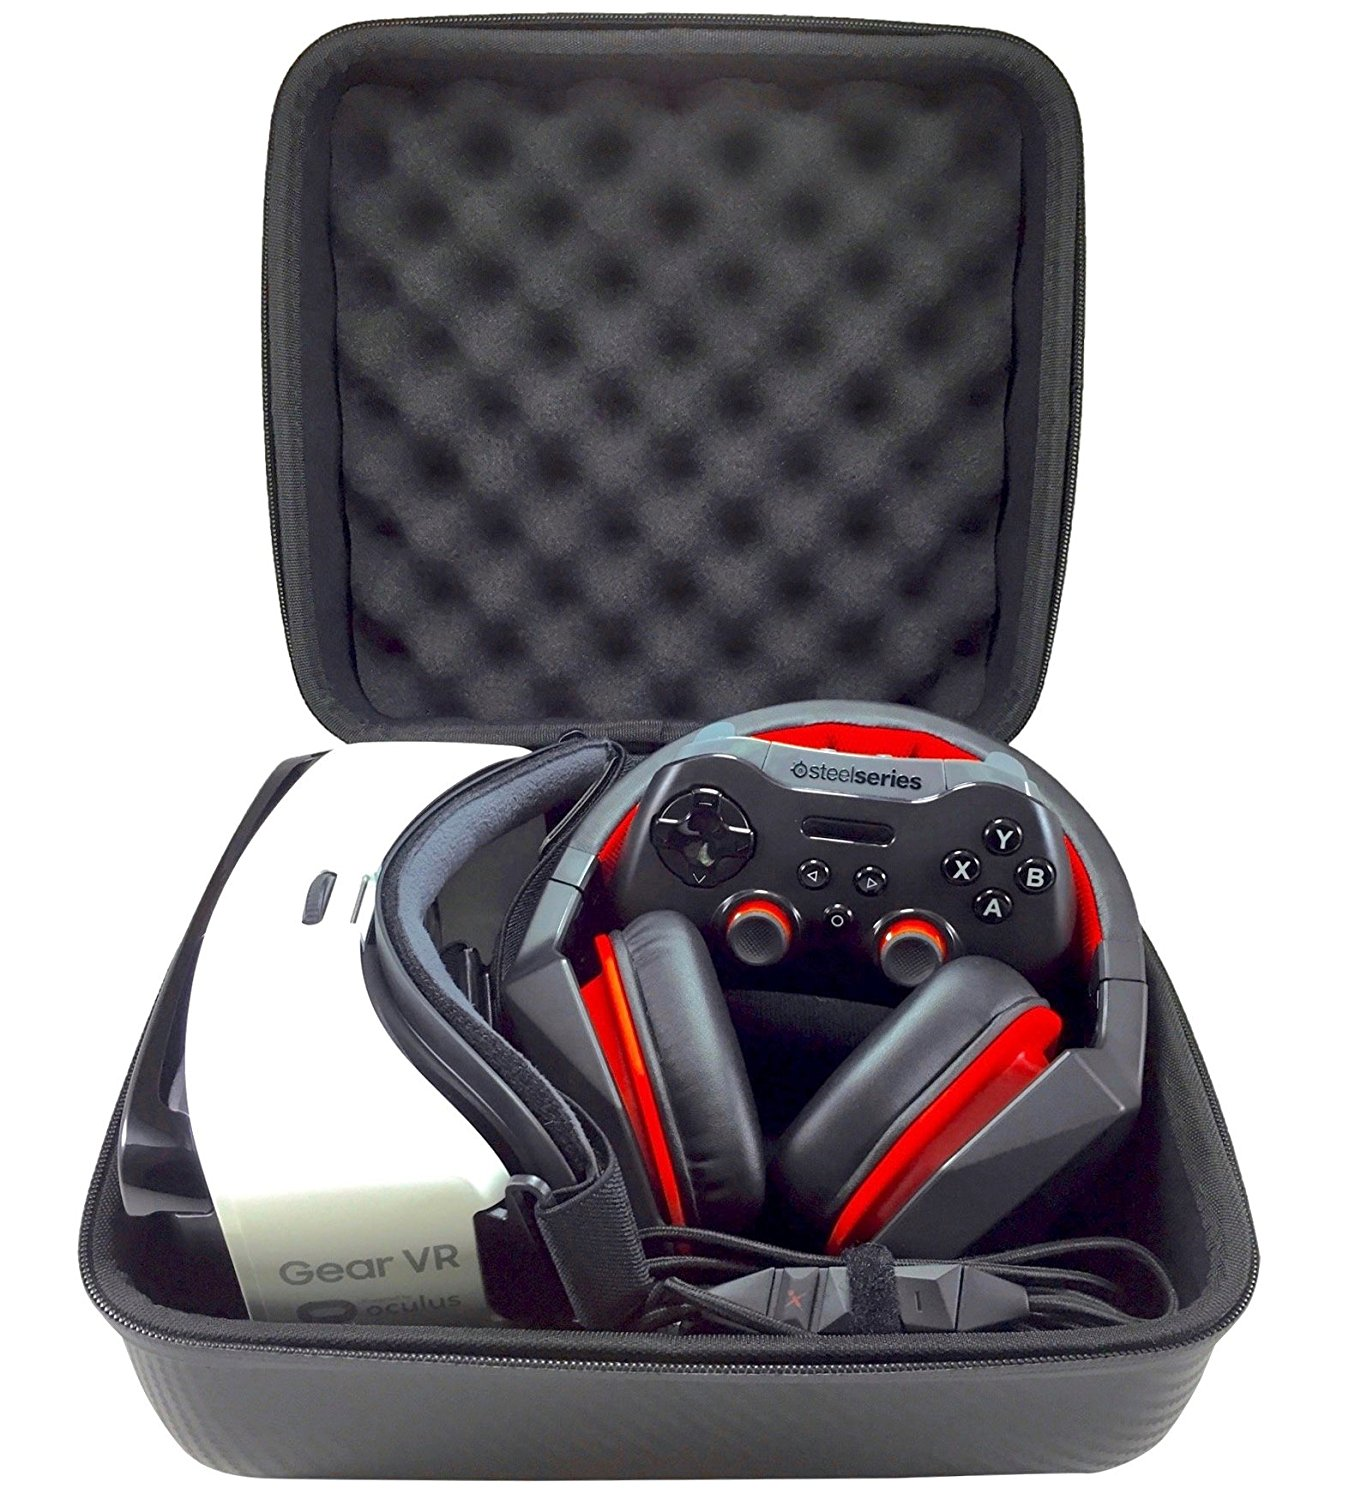 Graphein VR Headset and Accessory Case with Egg Crate Foam